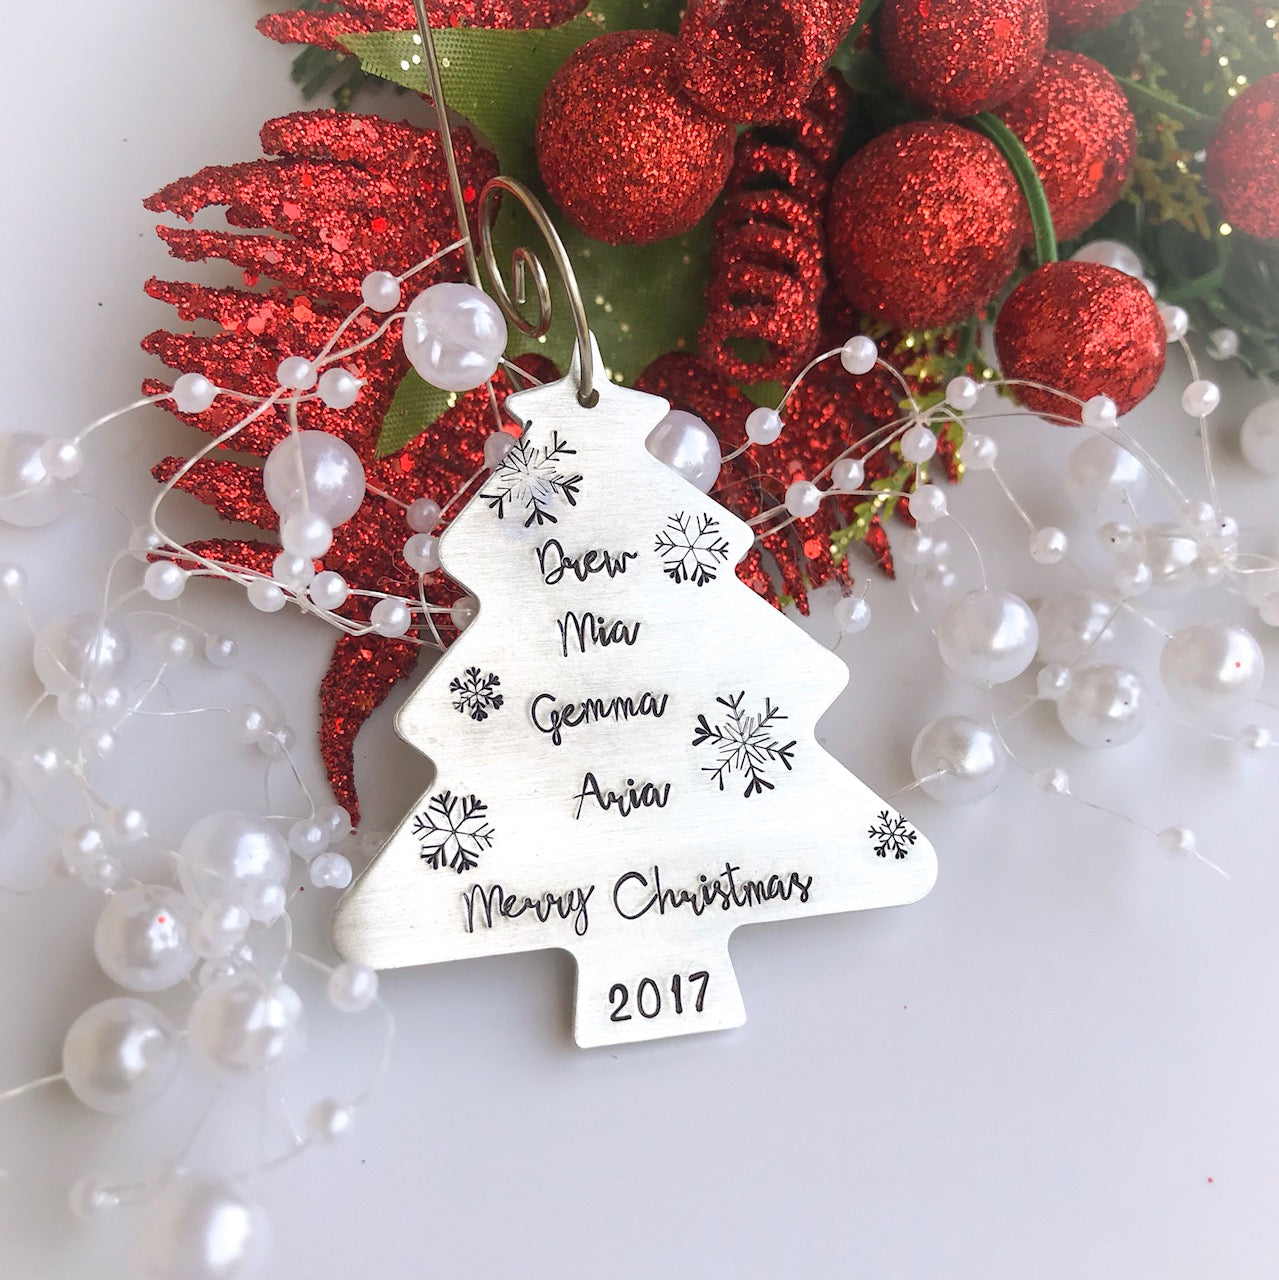 Personalized Christmas Balls.Personalized Christmas Tree Ornament